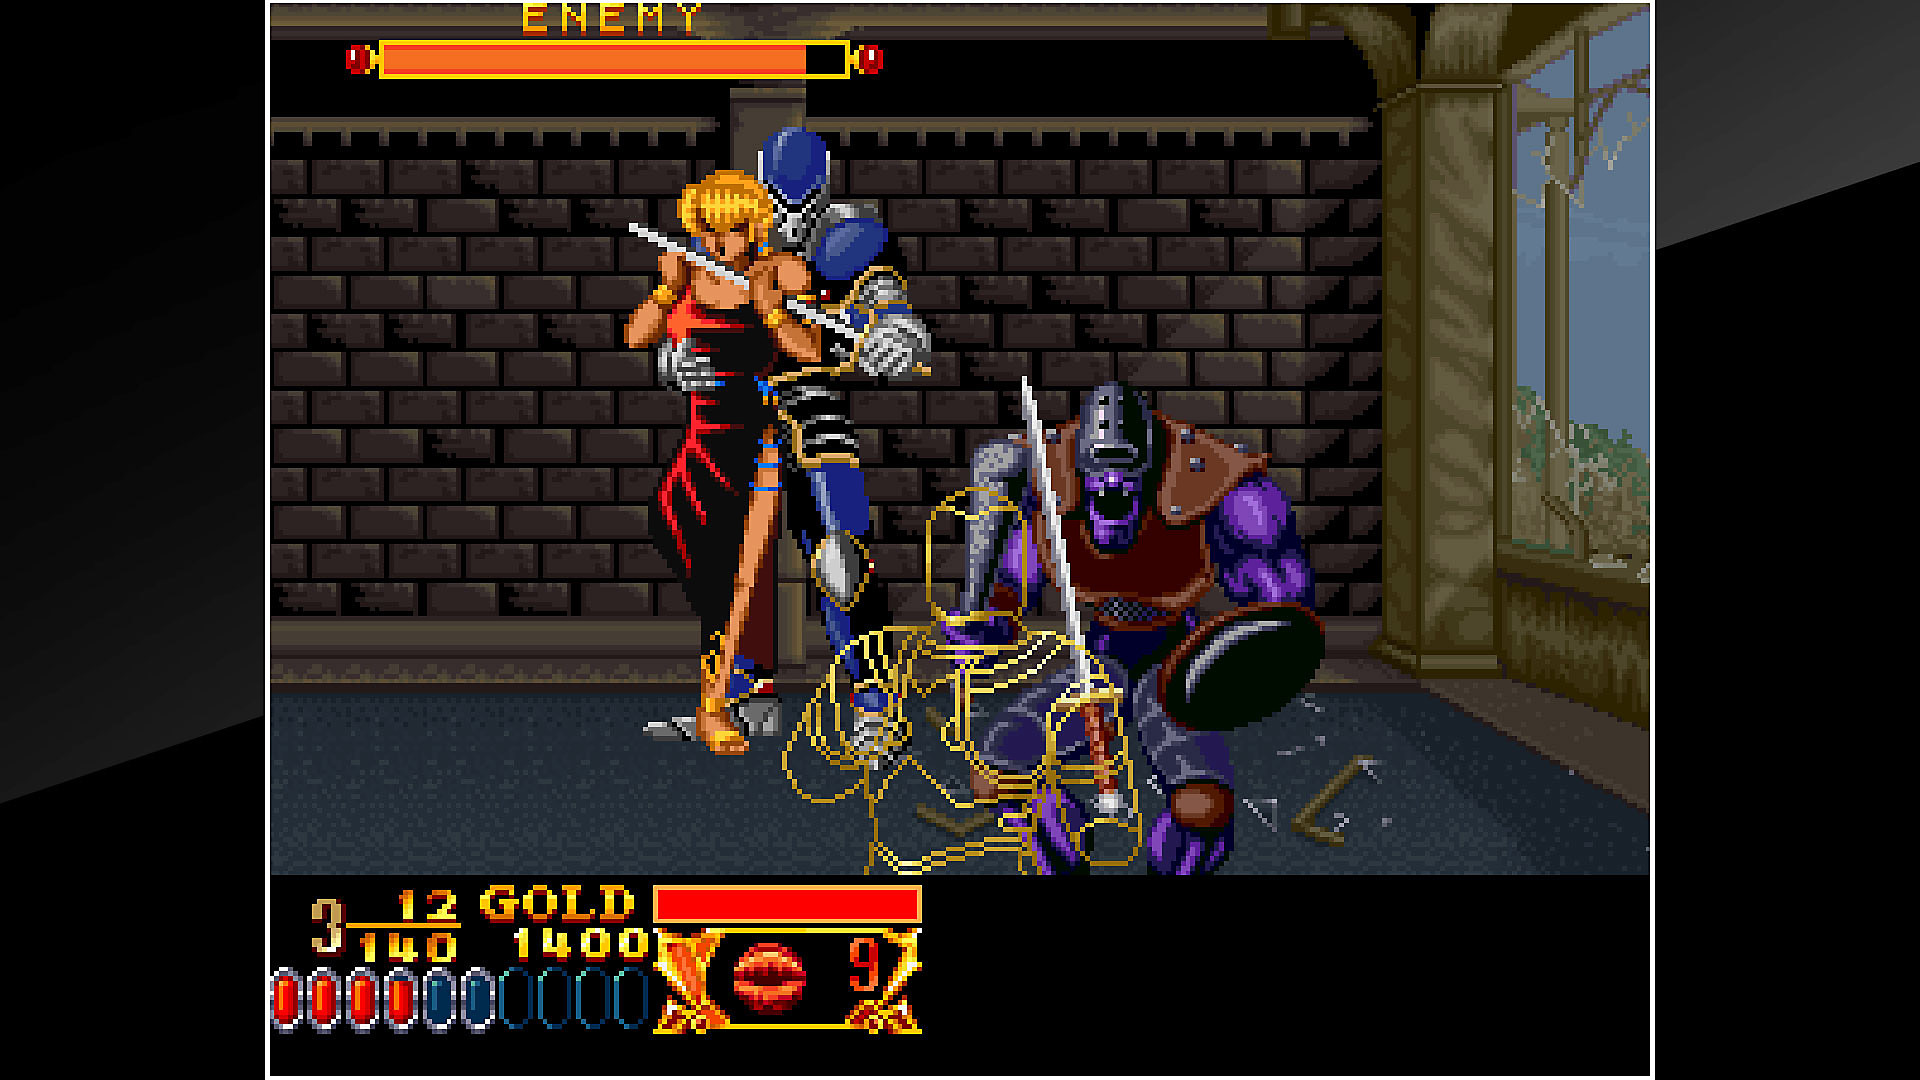 ACA NEOGEO CROSSED SWORDS Gameplay